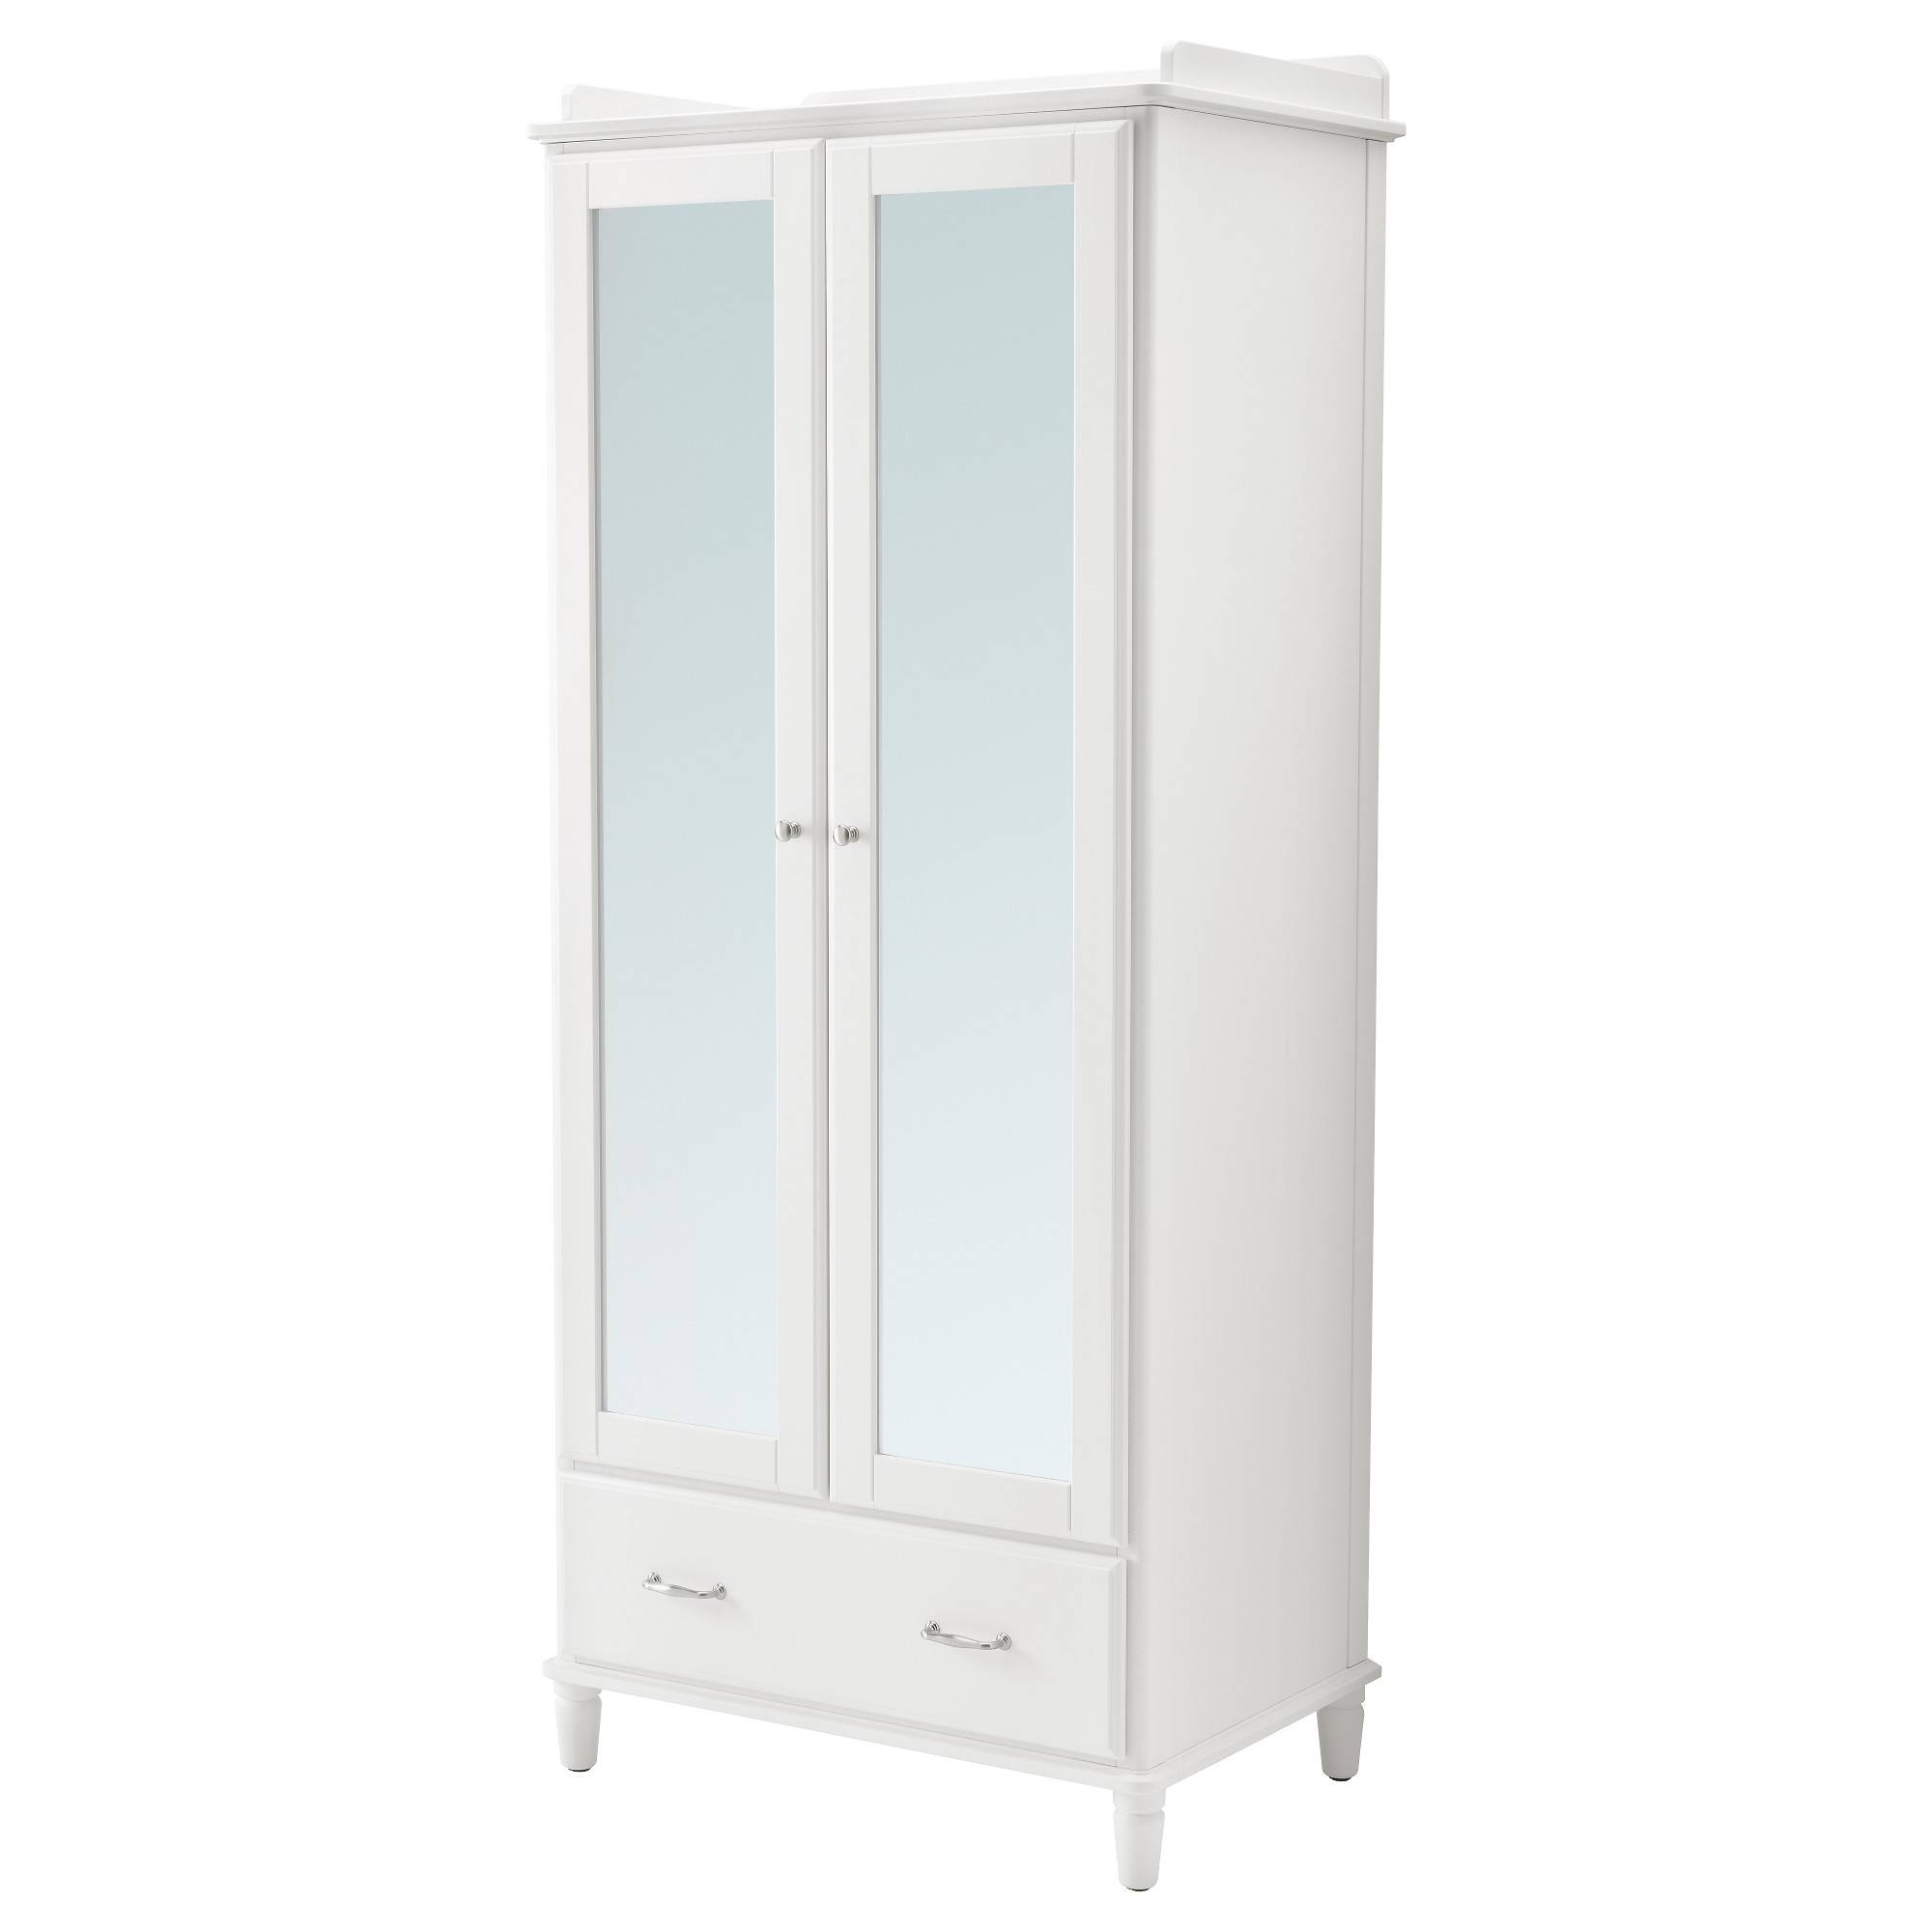 Wardrobes | Ikea within White Mirrored Wardrobes (Image 14 of 15)